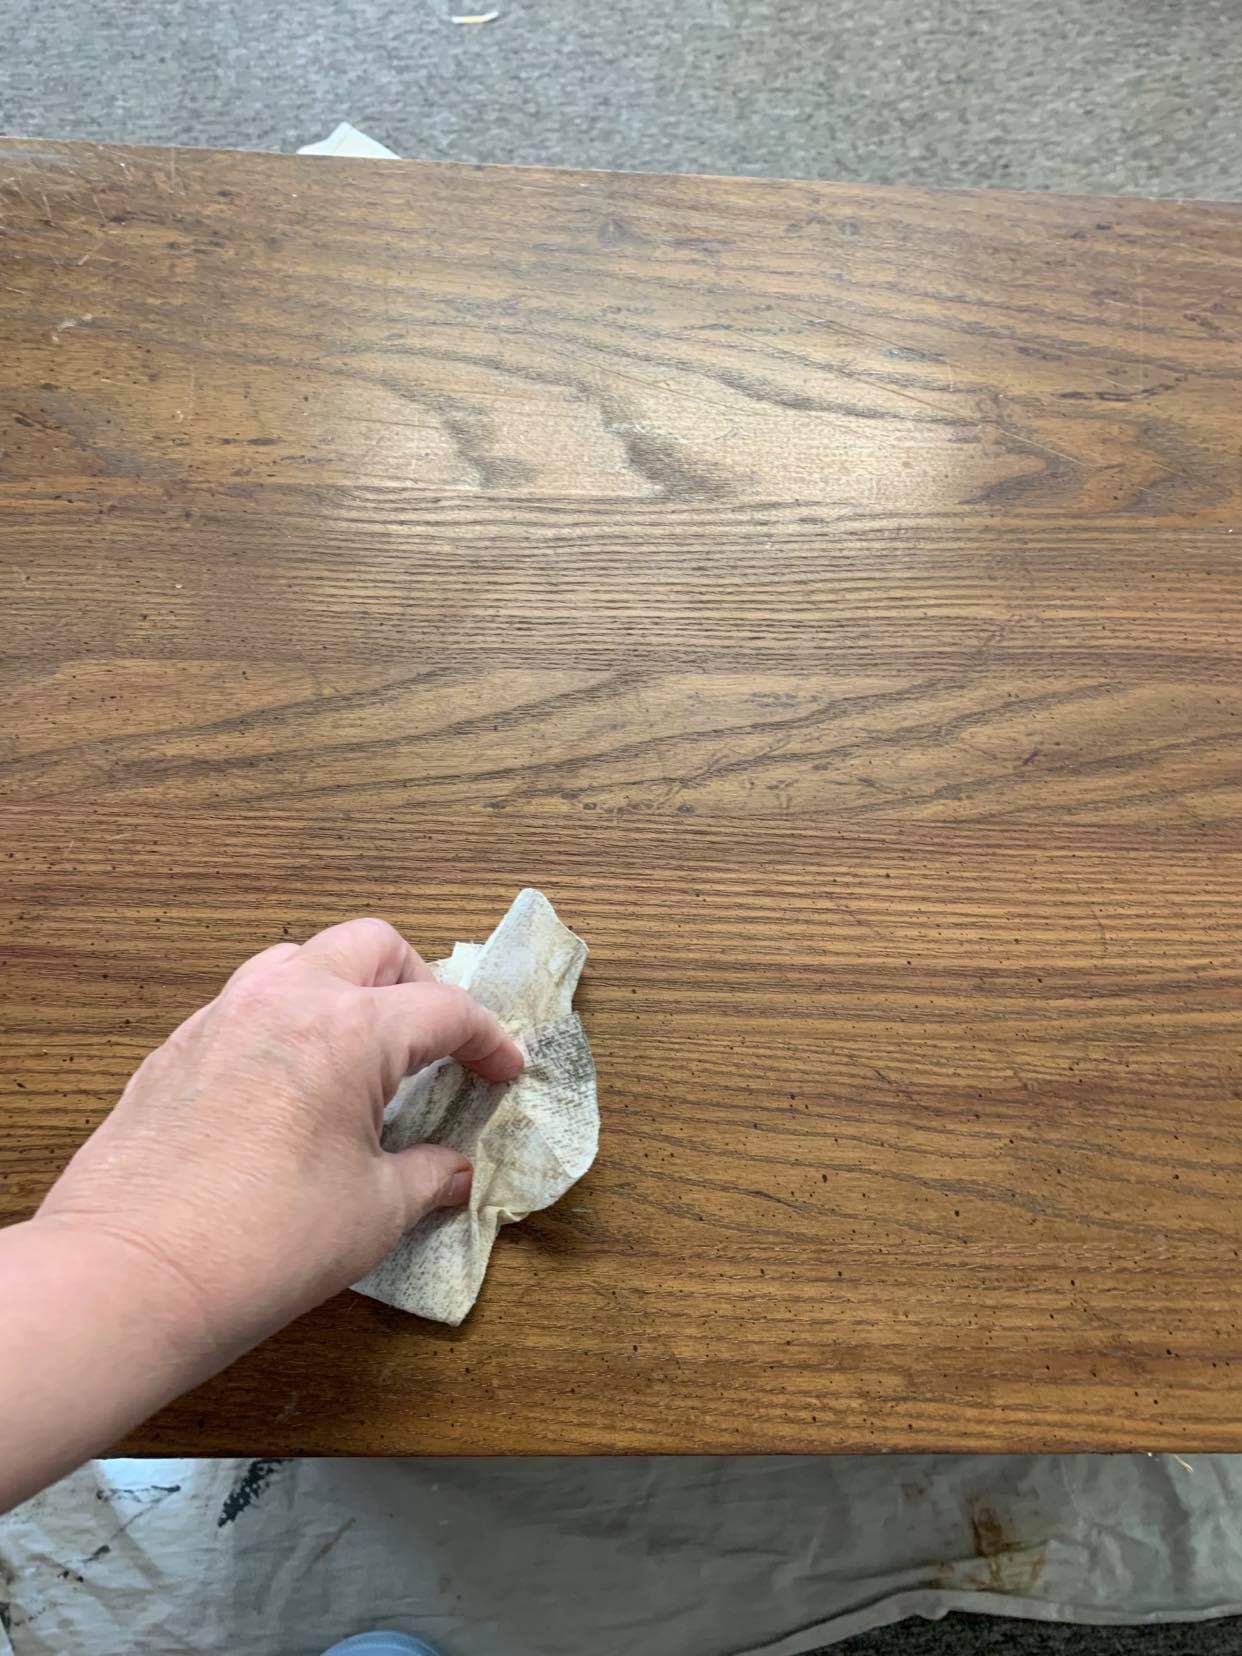 Clean furniture with a tack cloth or damp cloth.